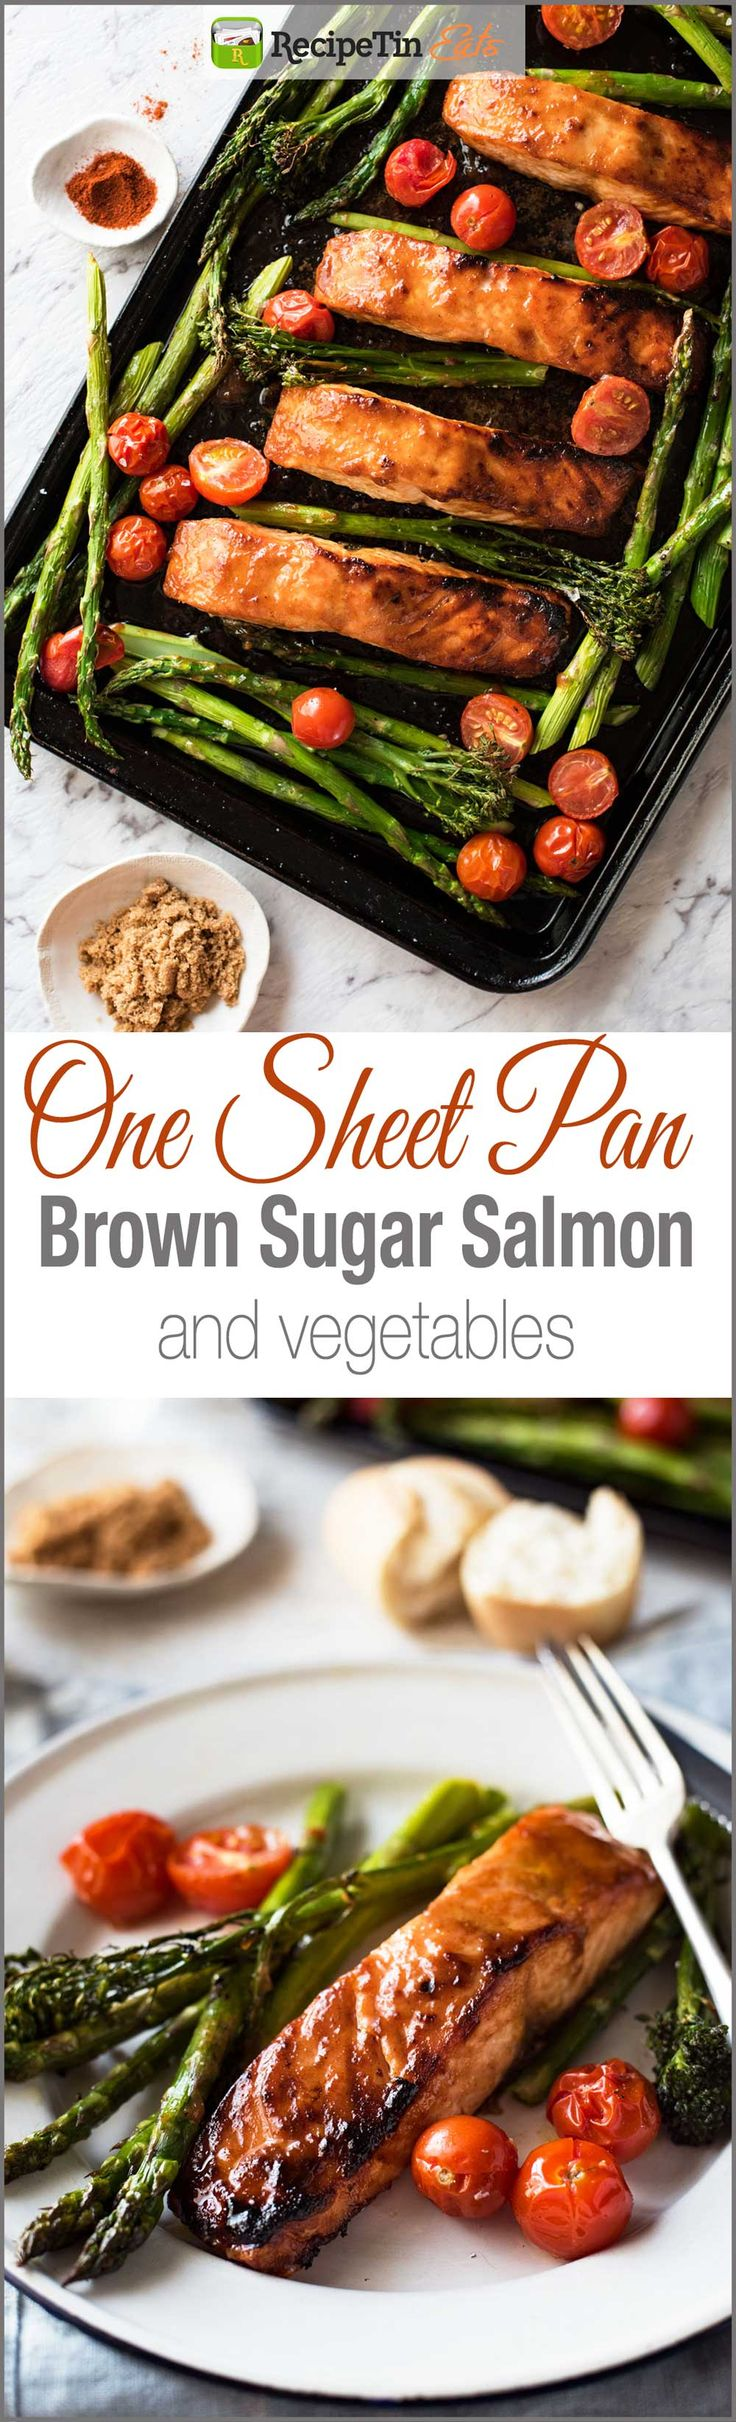 One Sheet Pan Brown Sugar Salmon & Vegetables - The glaze taste incredible and this whole dinner is ready in 15 minutes flat!